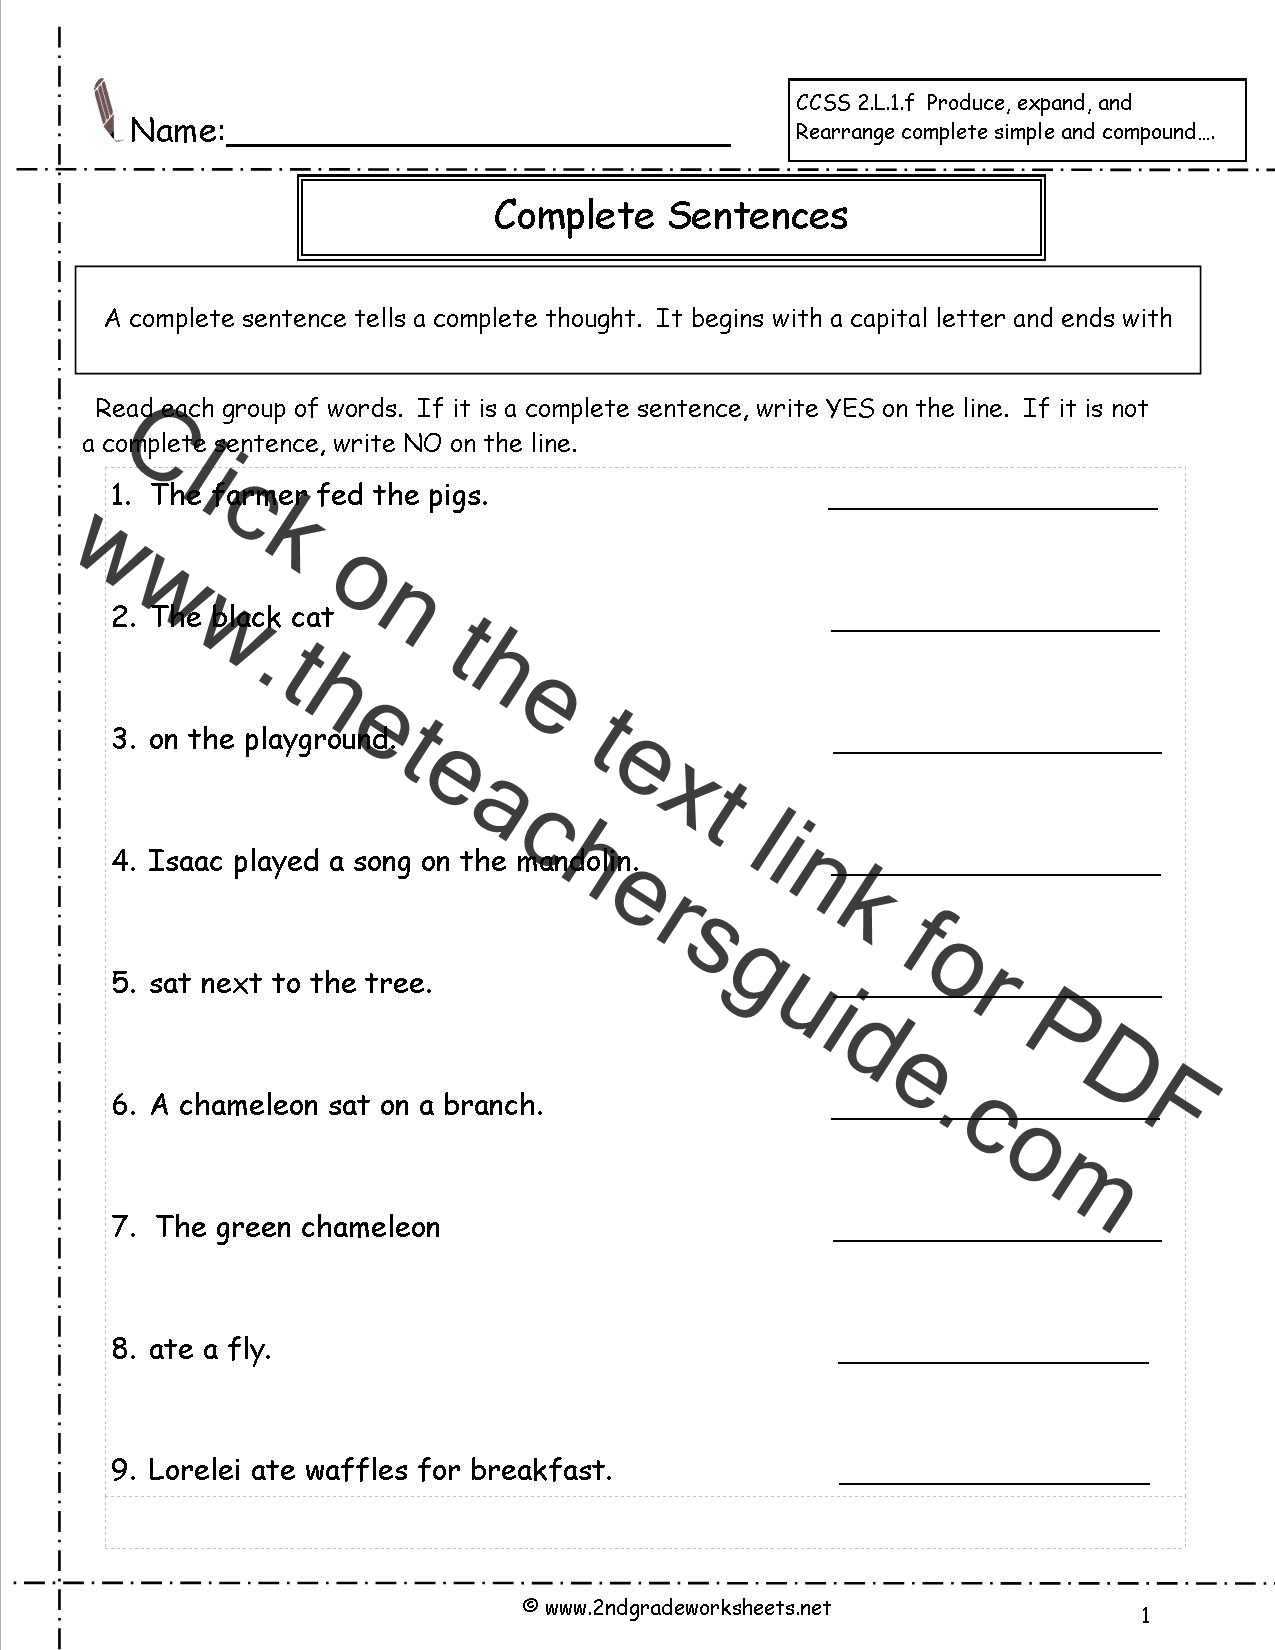 Worksheets Sentence Completion Worksheets second grade sentences worksheets ccss 2 l 1 f complete sentence worksheet